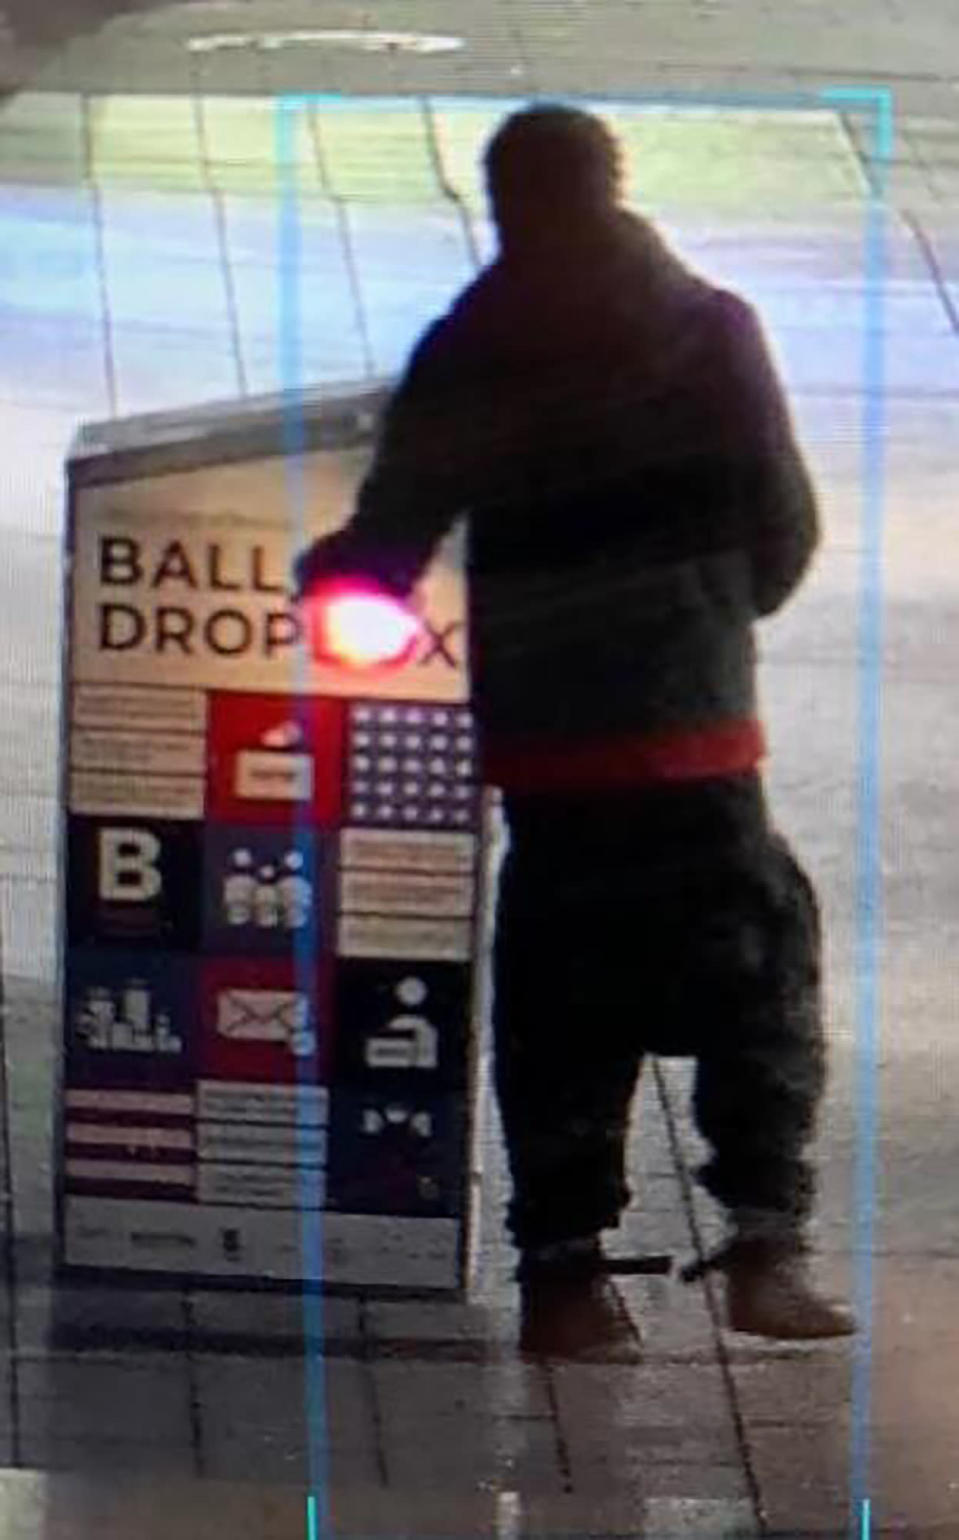 "This surveillance image provided by the Boston Police Department shows a man approaching a ballot drop box outside the Boston Public Library, early Sunday, Oct. 25, 2020, in downtown Boston. Massachusetts election officials say a fire was set at the ballot drop box holding more than 120 ballots in what appears to have been a ""deliberate attack."" Boston Police say that an arson investigation is underway and the person shown in this surveillance image is a person of interest. (Courtesy of Boston Police Department via AP)"